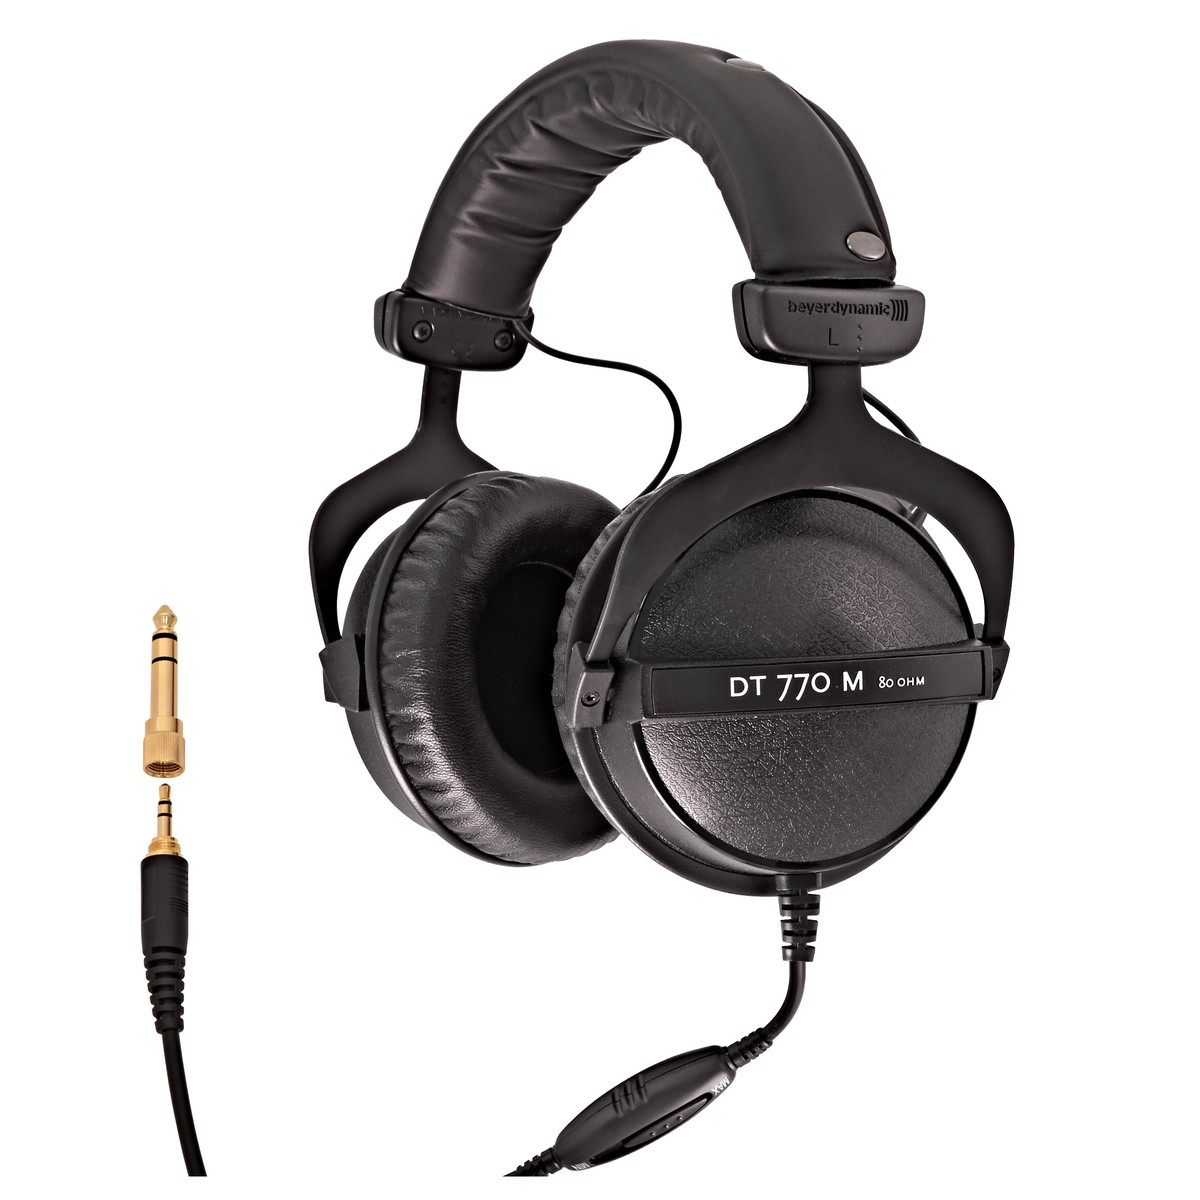 beyerdynamic dt 770 m monitoring headphones 80 ohm at. Black Bedroom Furniture Sets. Home Design Ideas